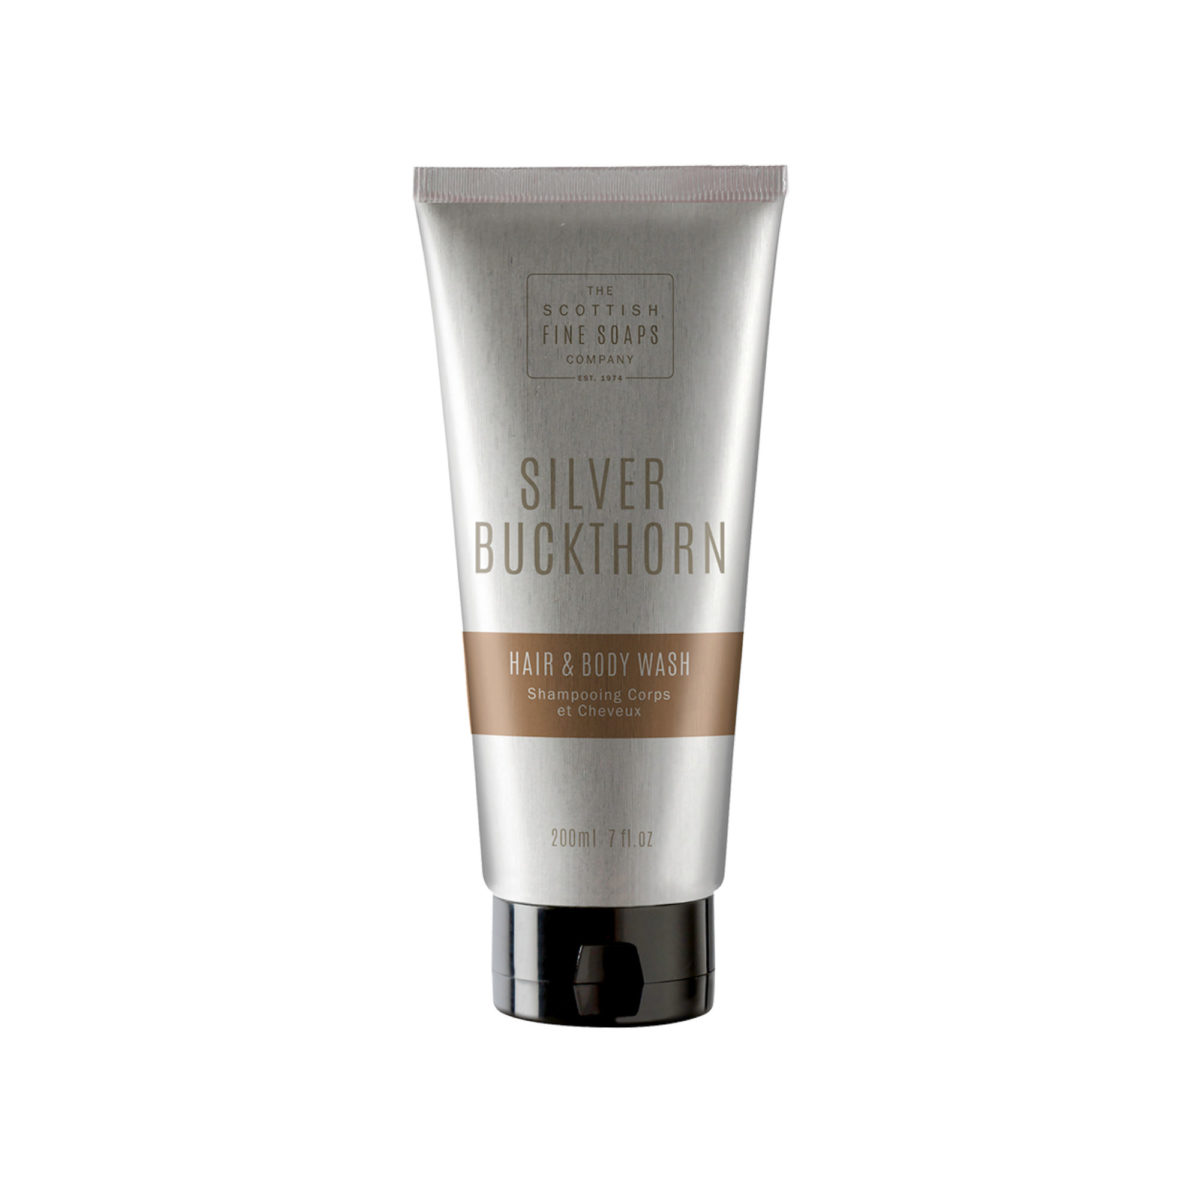 Silver Buckthorn Hair & Body Wash